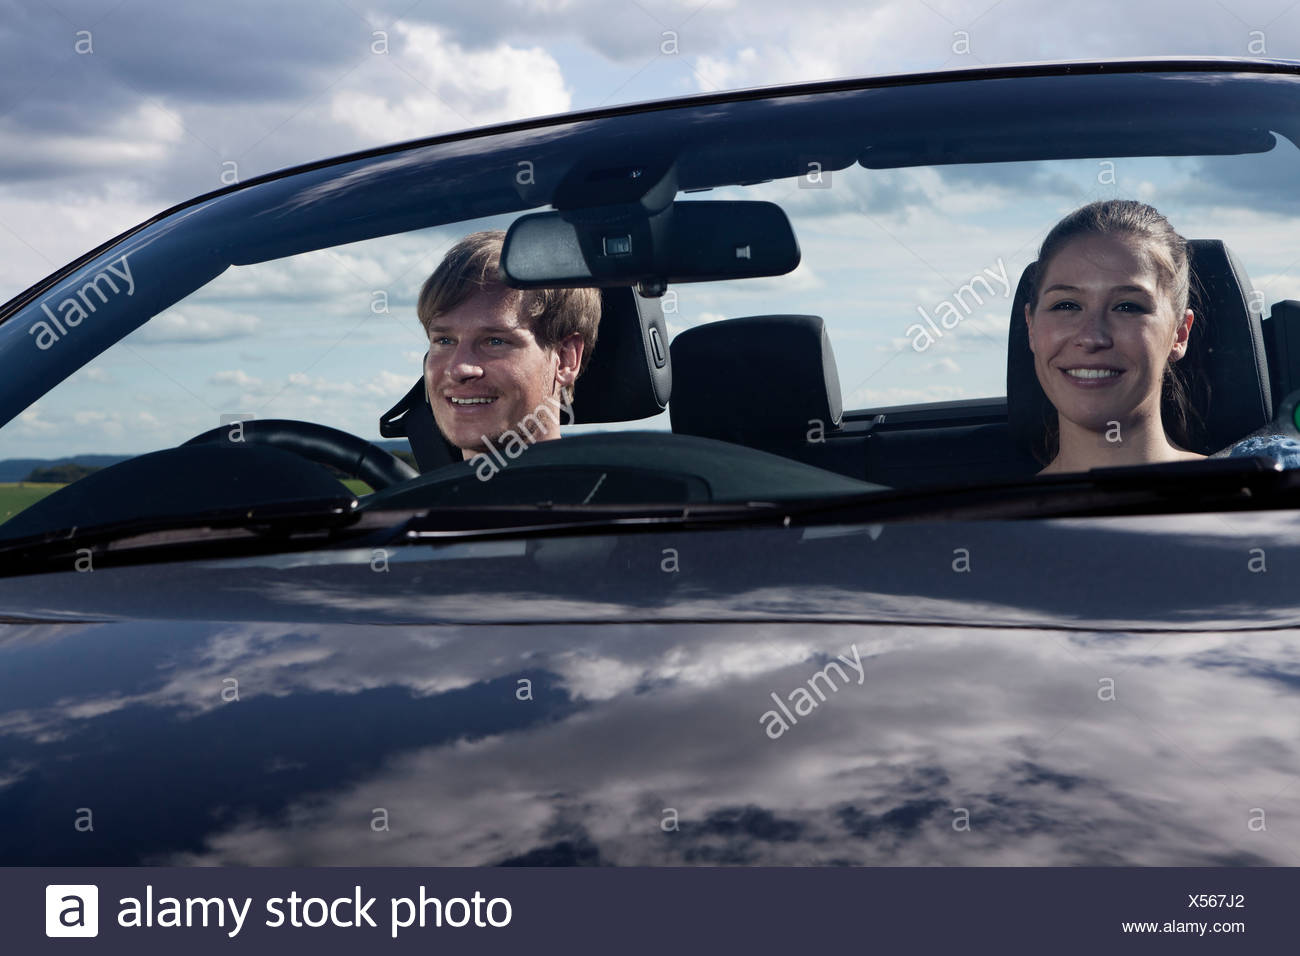 Germany, Bavaria, Couple in car, smiling - Stock Image